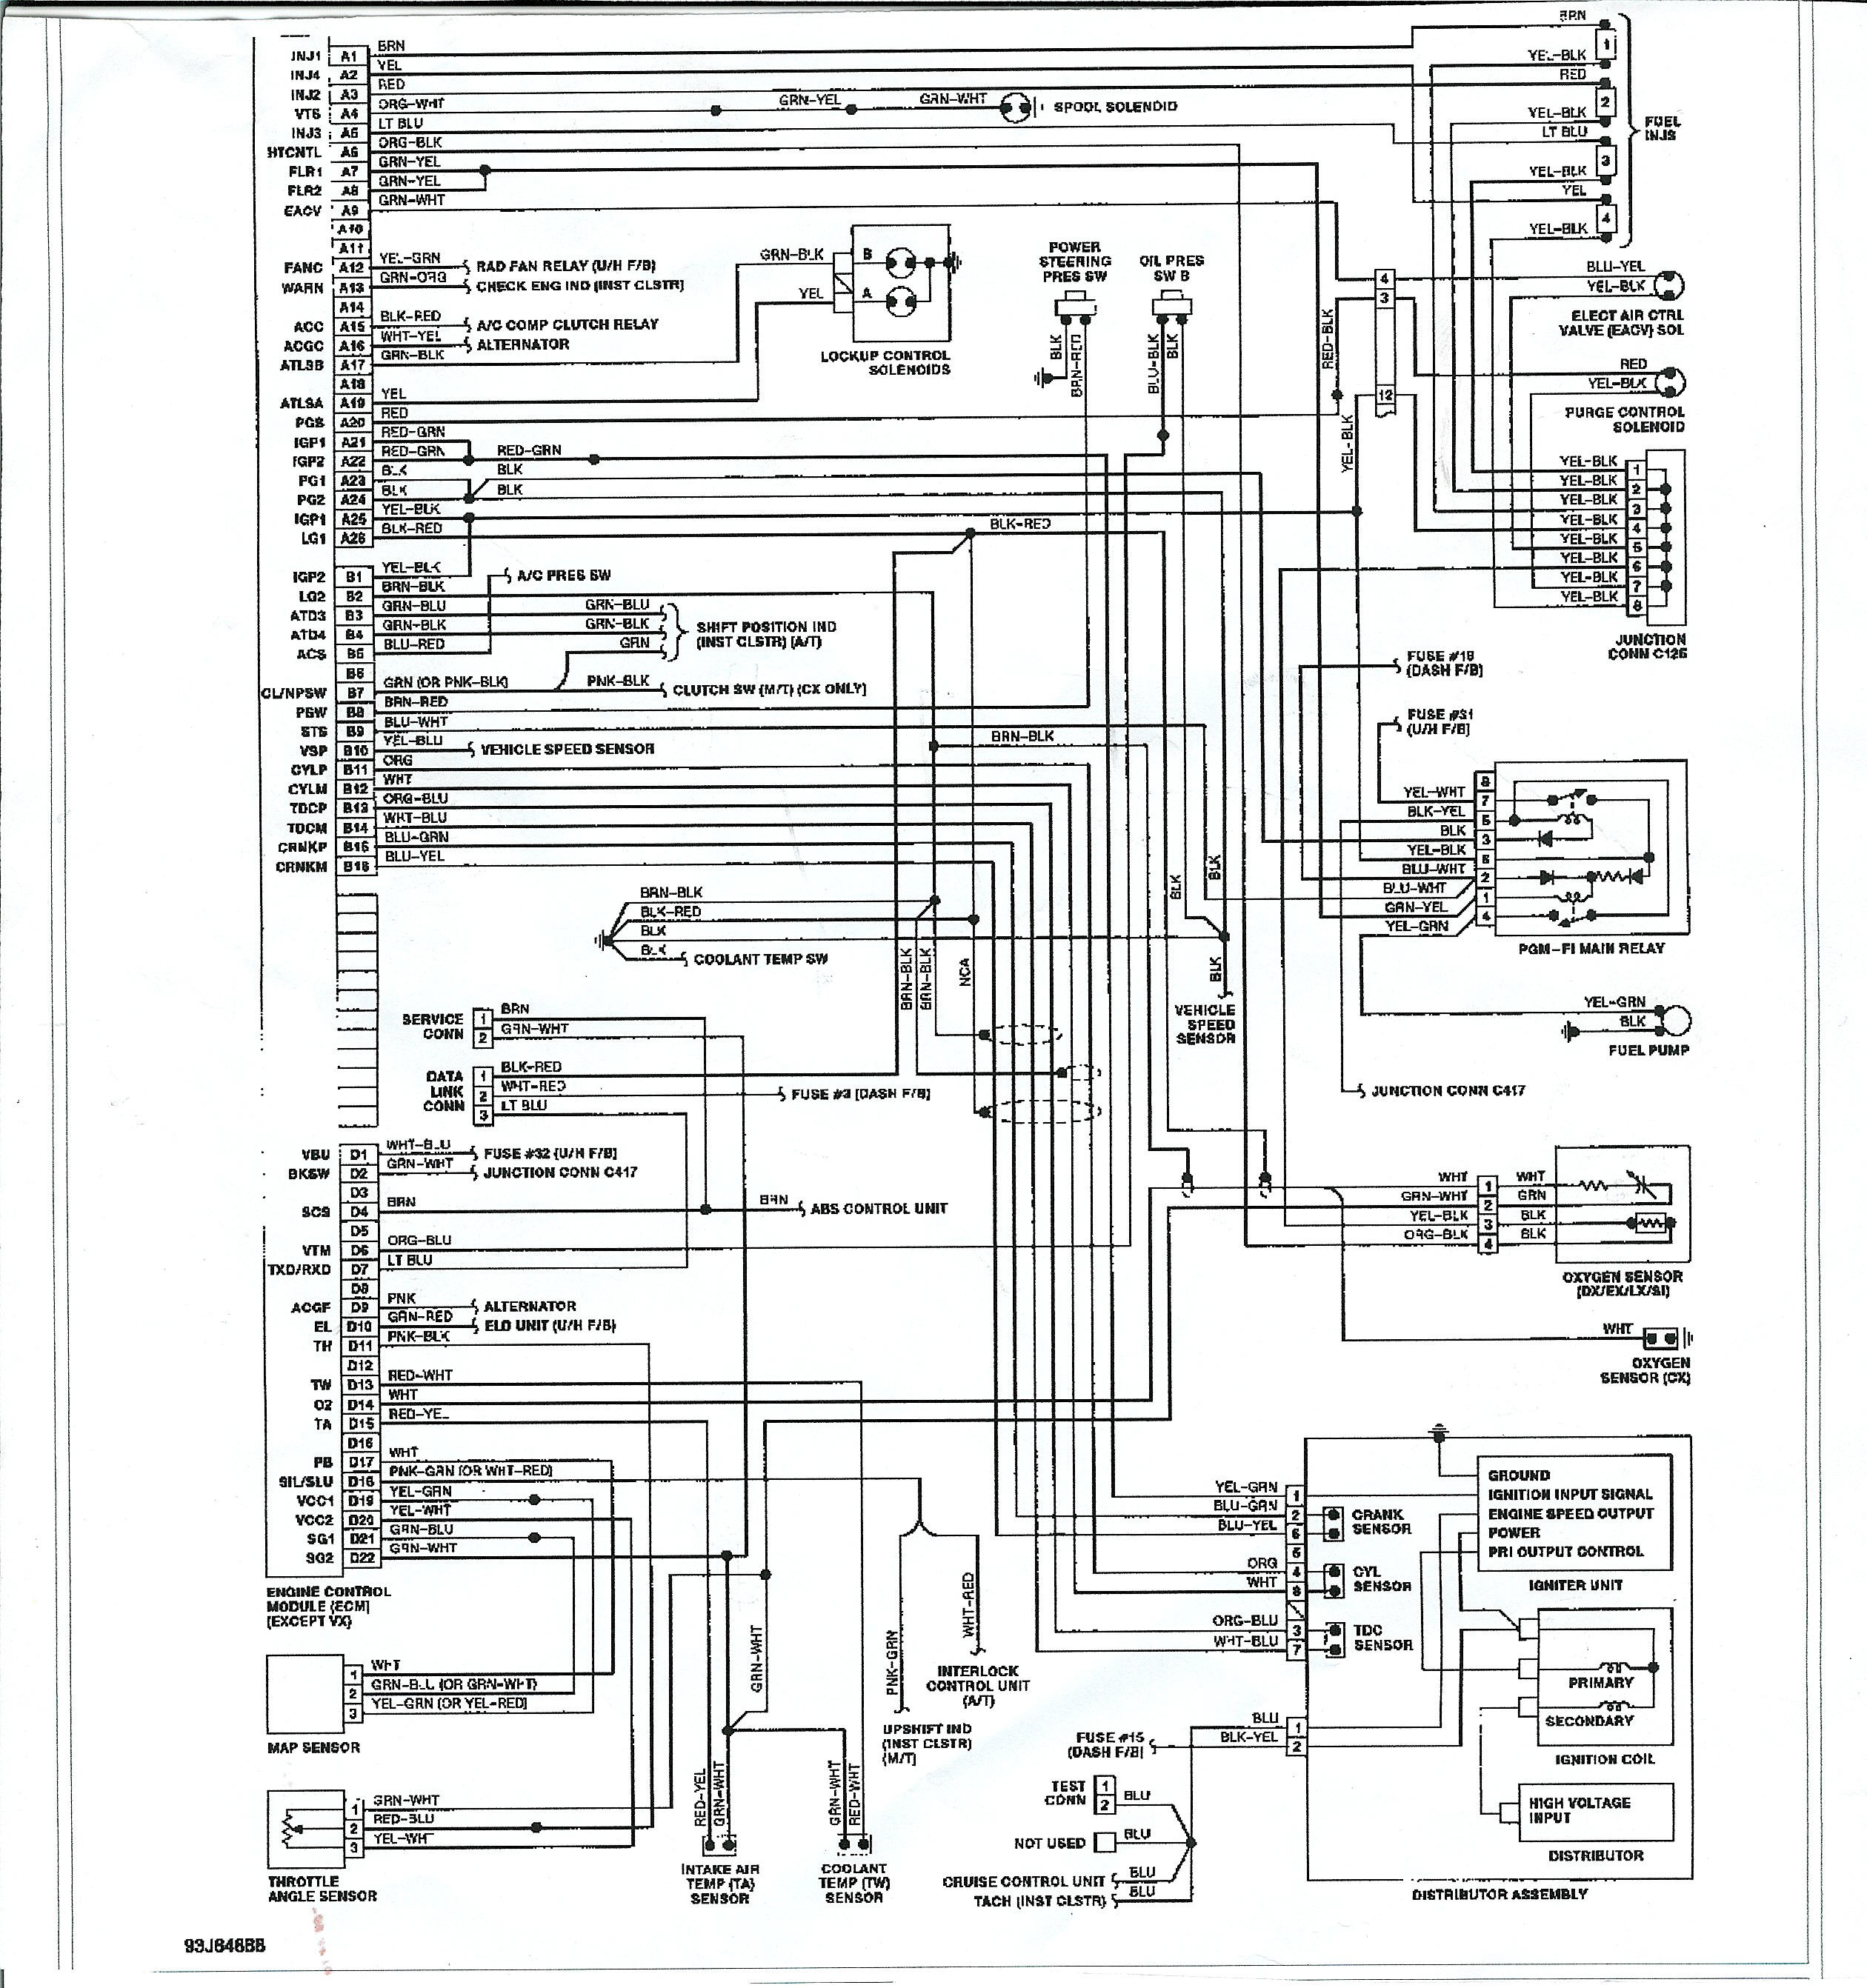 2006 Honda Civic Engine Wiring Diagram • Wiring Diagram